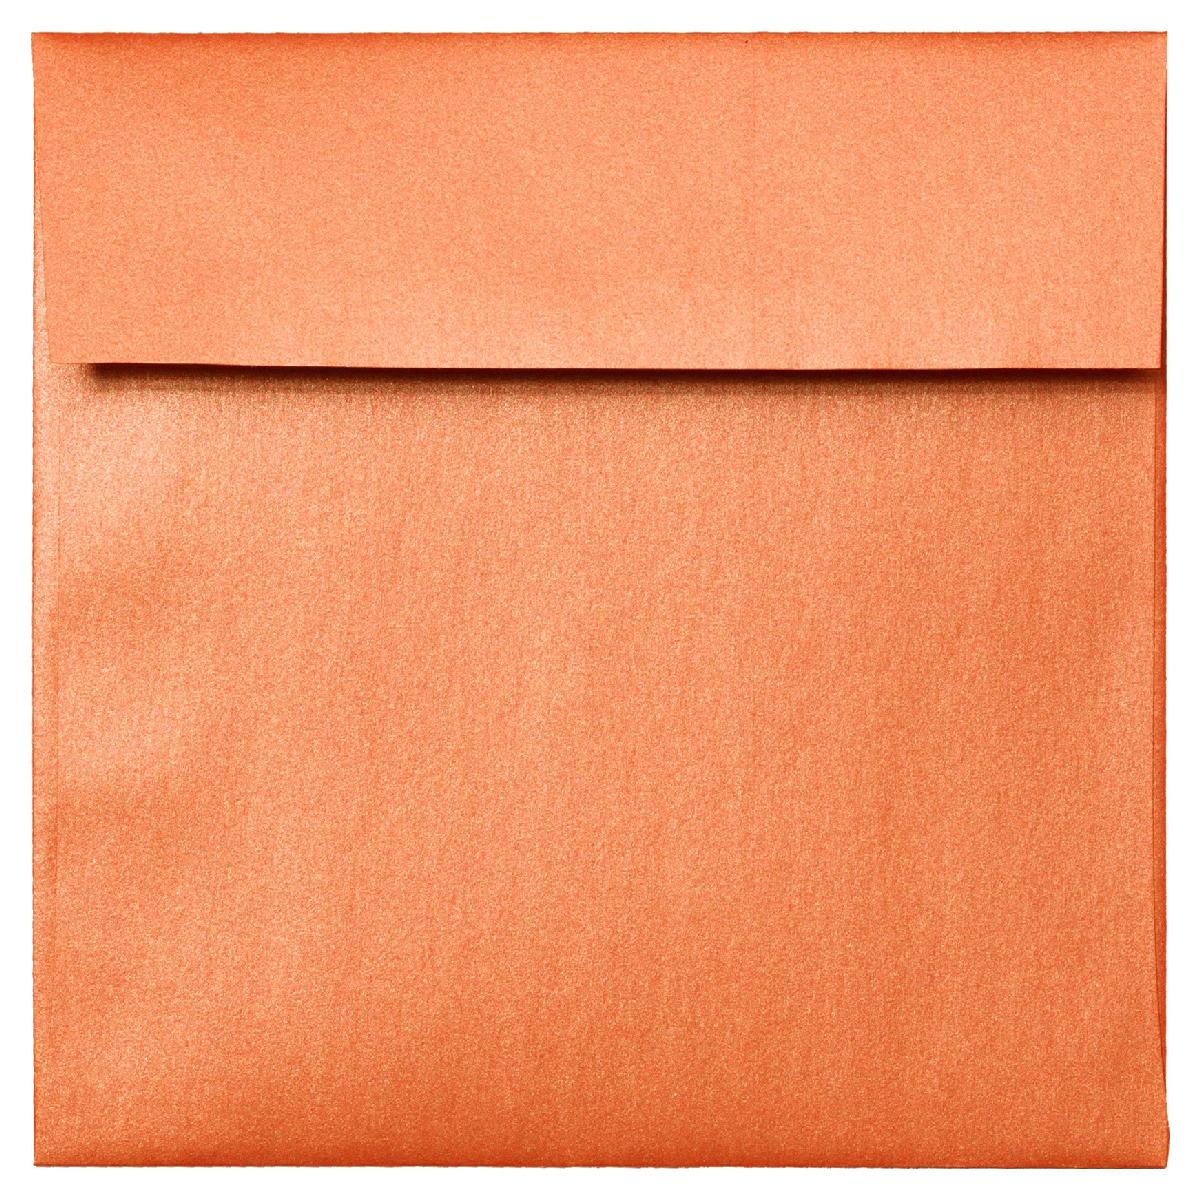 Stardream® Metallics FLAME Smooth 81 lb. Text 8.5 x 8.5 in. Square Envelopes 50 per Pack